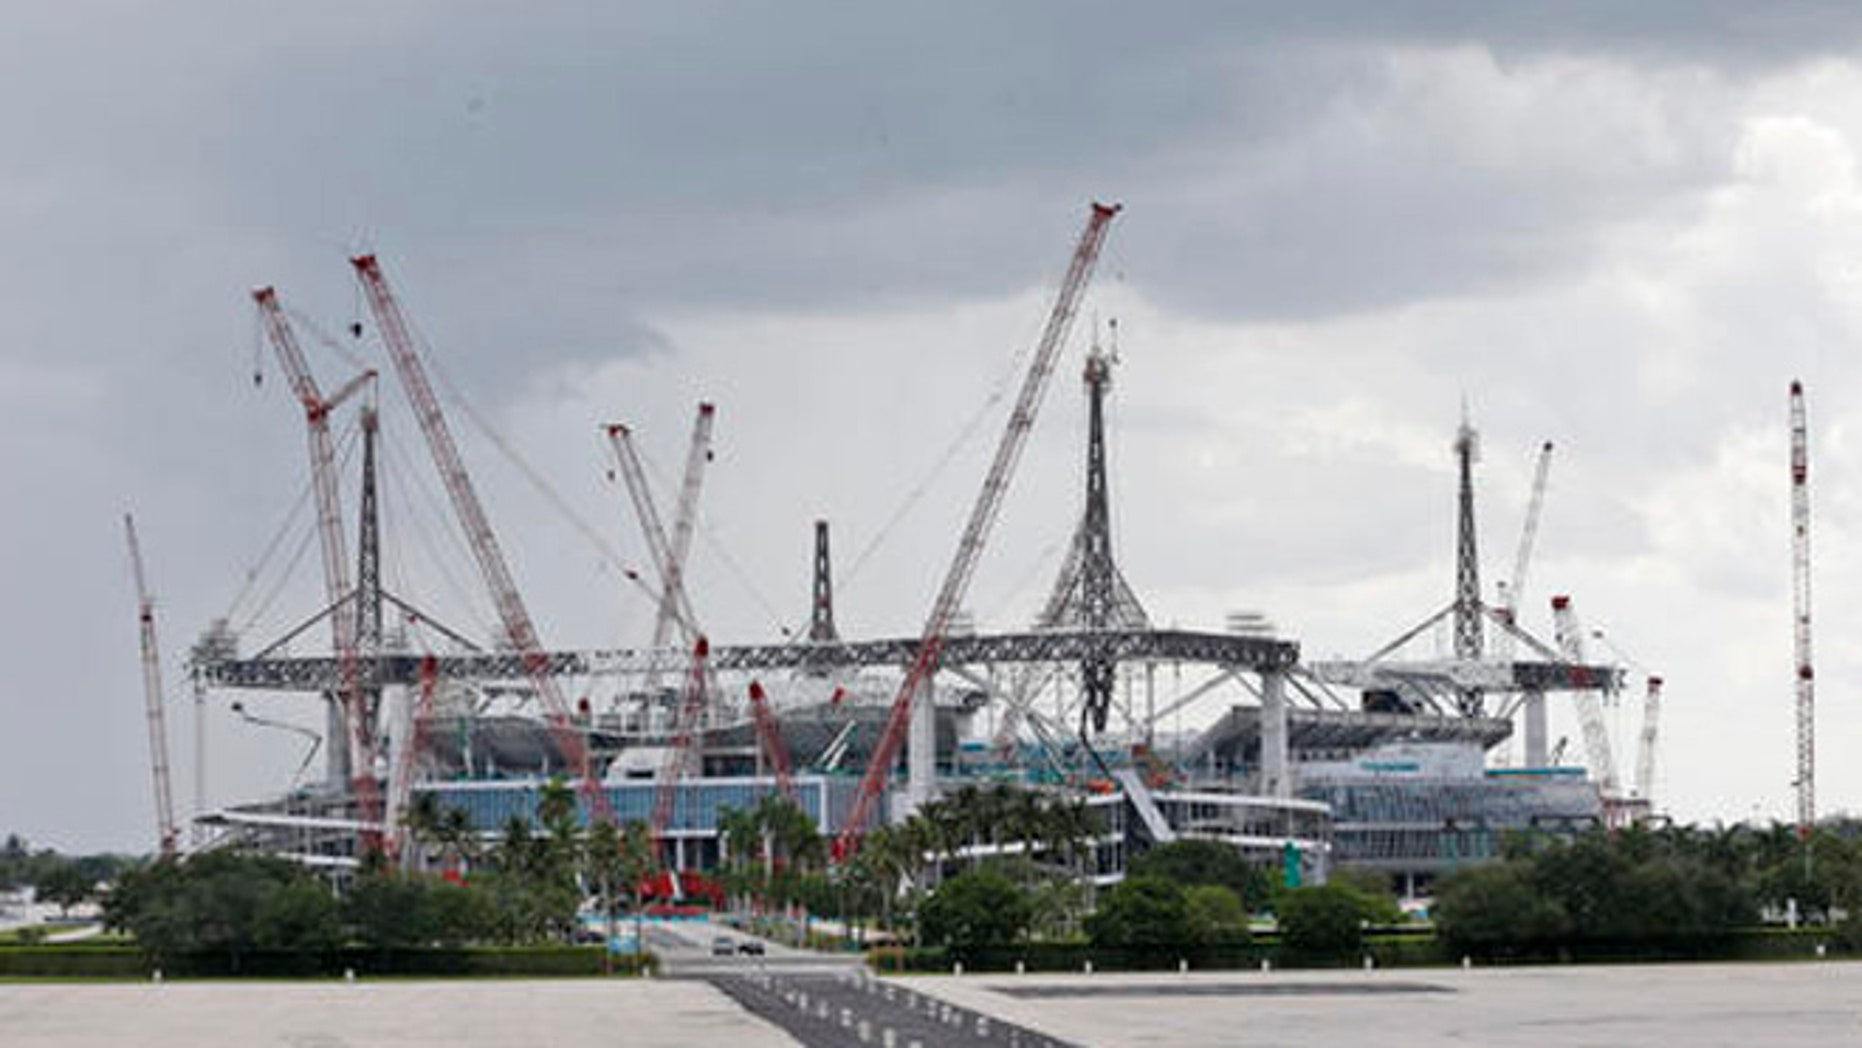 In this, Saturday, May 21, 2016, photo, the stadium where the Miami Dolphins play football is shown under renovation in Miami Gardens, Fla.